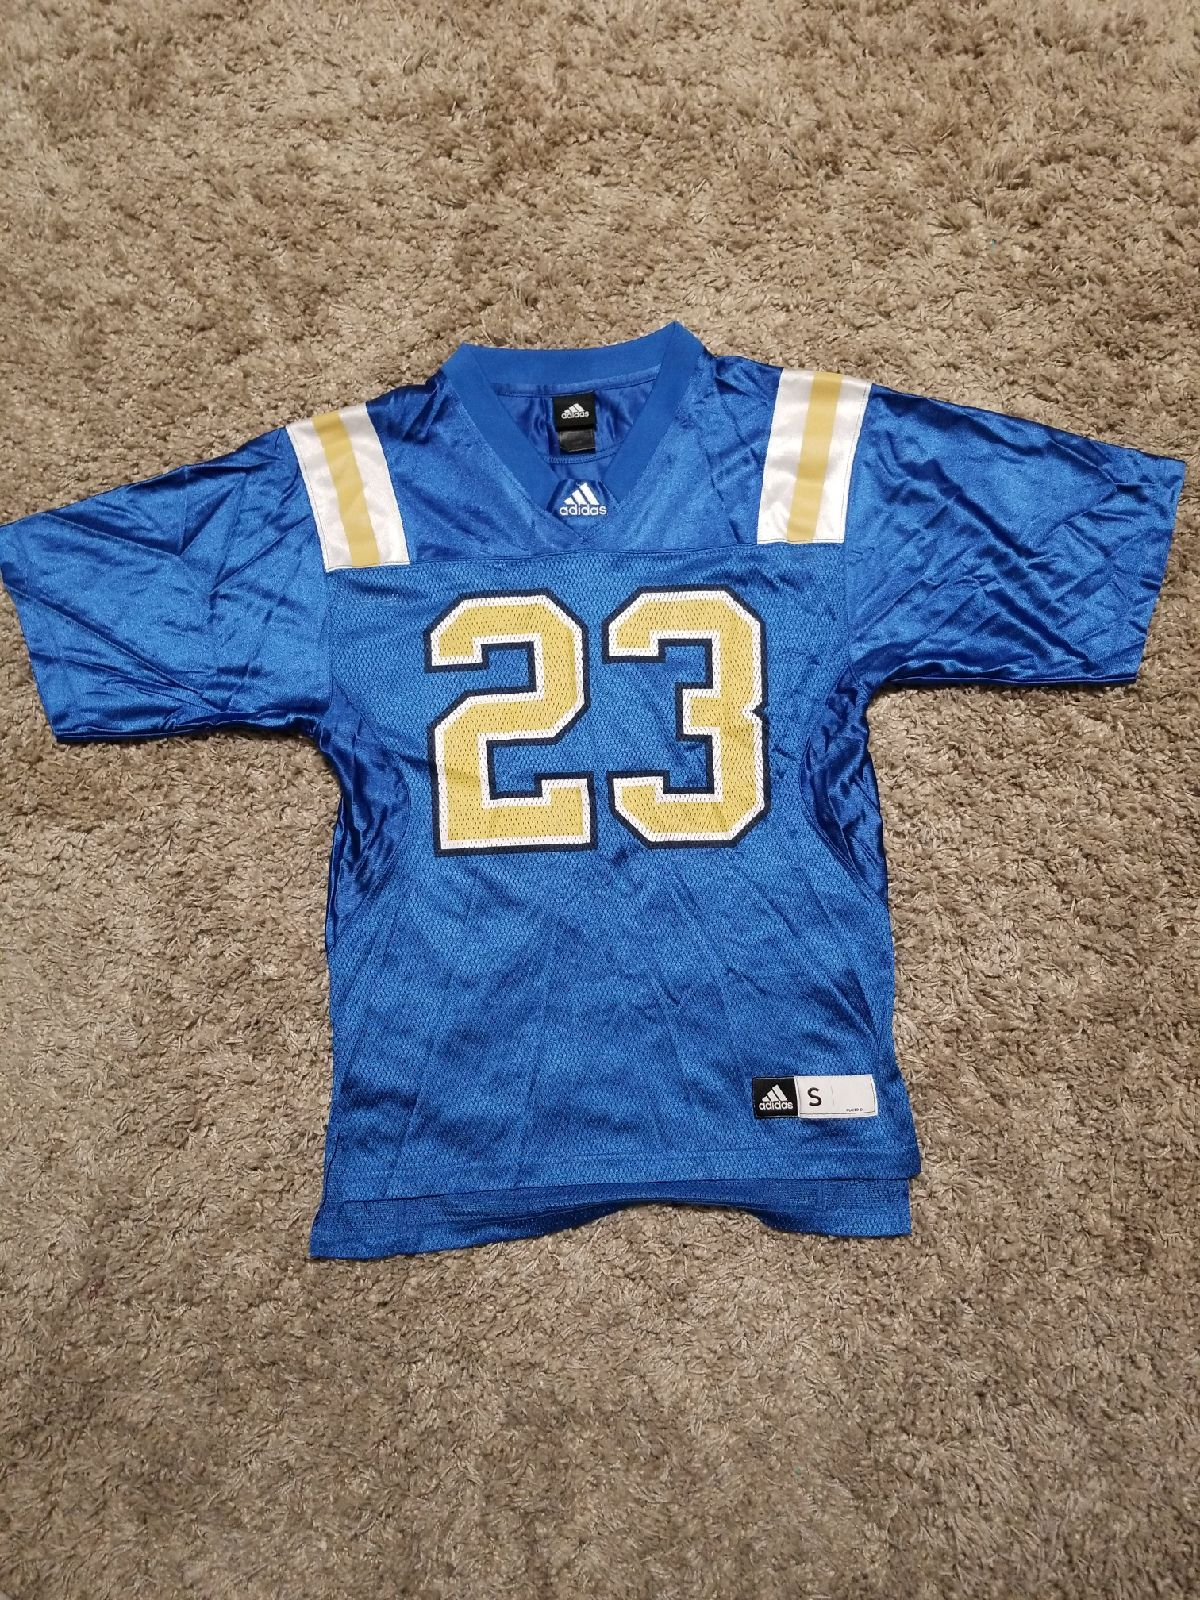 Pin By Roanhorse 4756 On Ucla Bruins Football In 2020 Ucla Bruins Football Ucla Bruins Football Jerseys